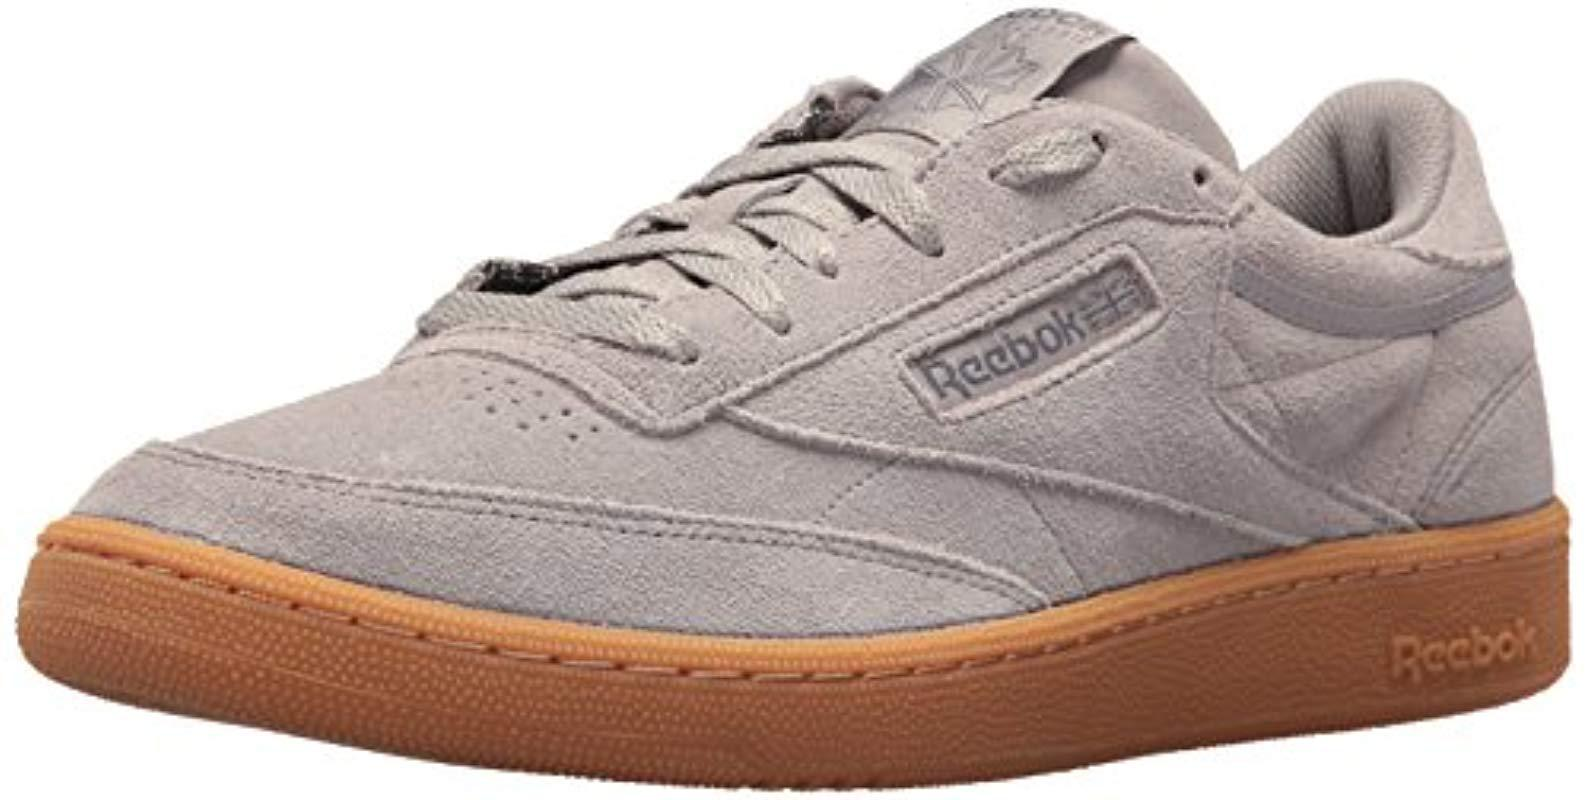 d916daf9364 Lyst - Reebok Club C 85 Gs Sneaker in Gray for Men - Save 26%